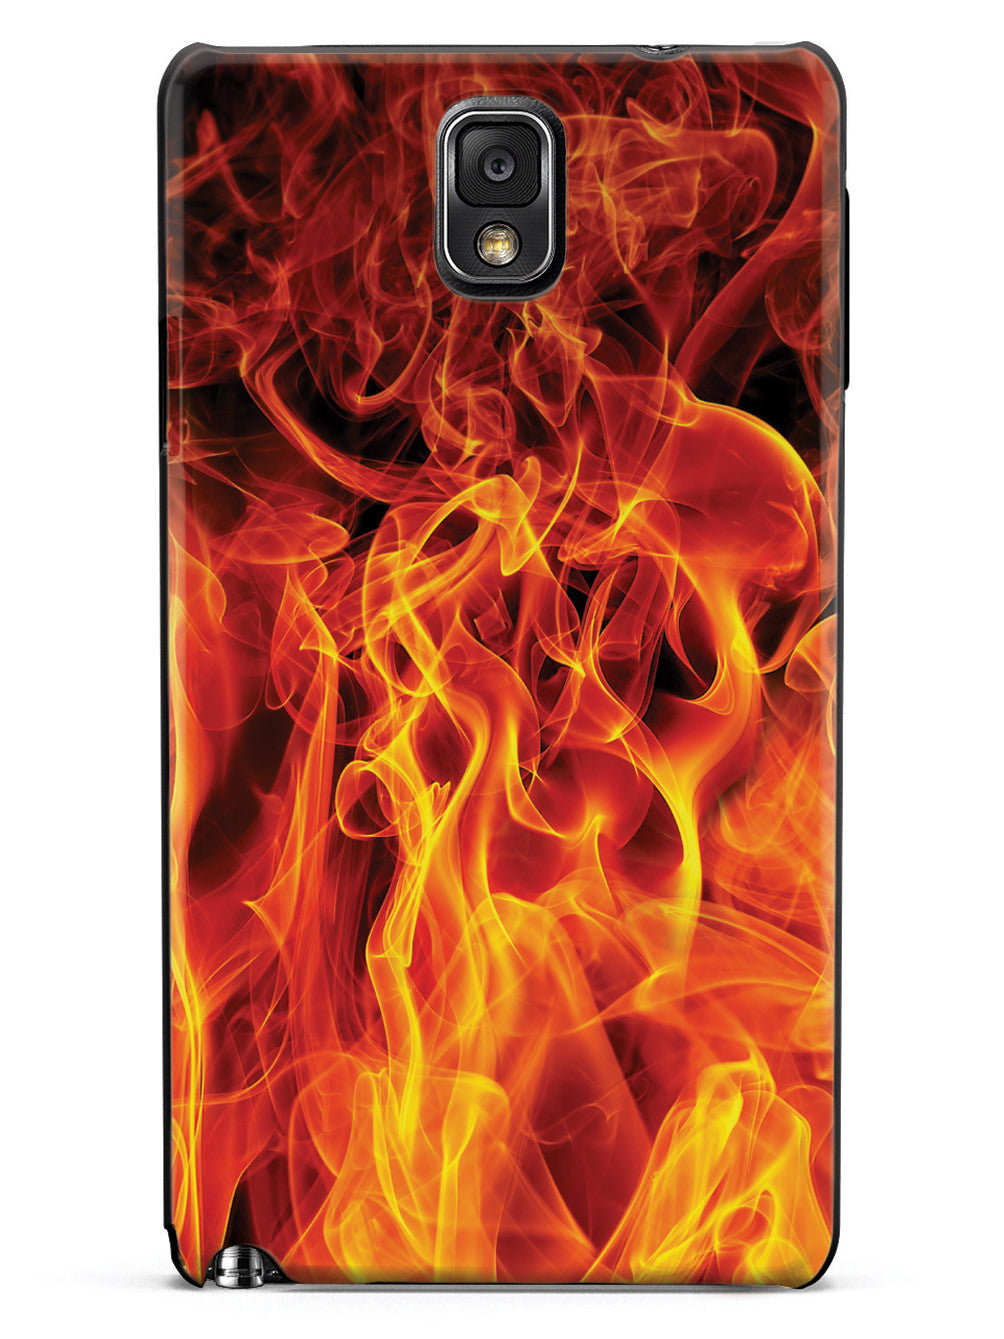 Fire Inferno Flame Case